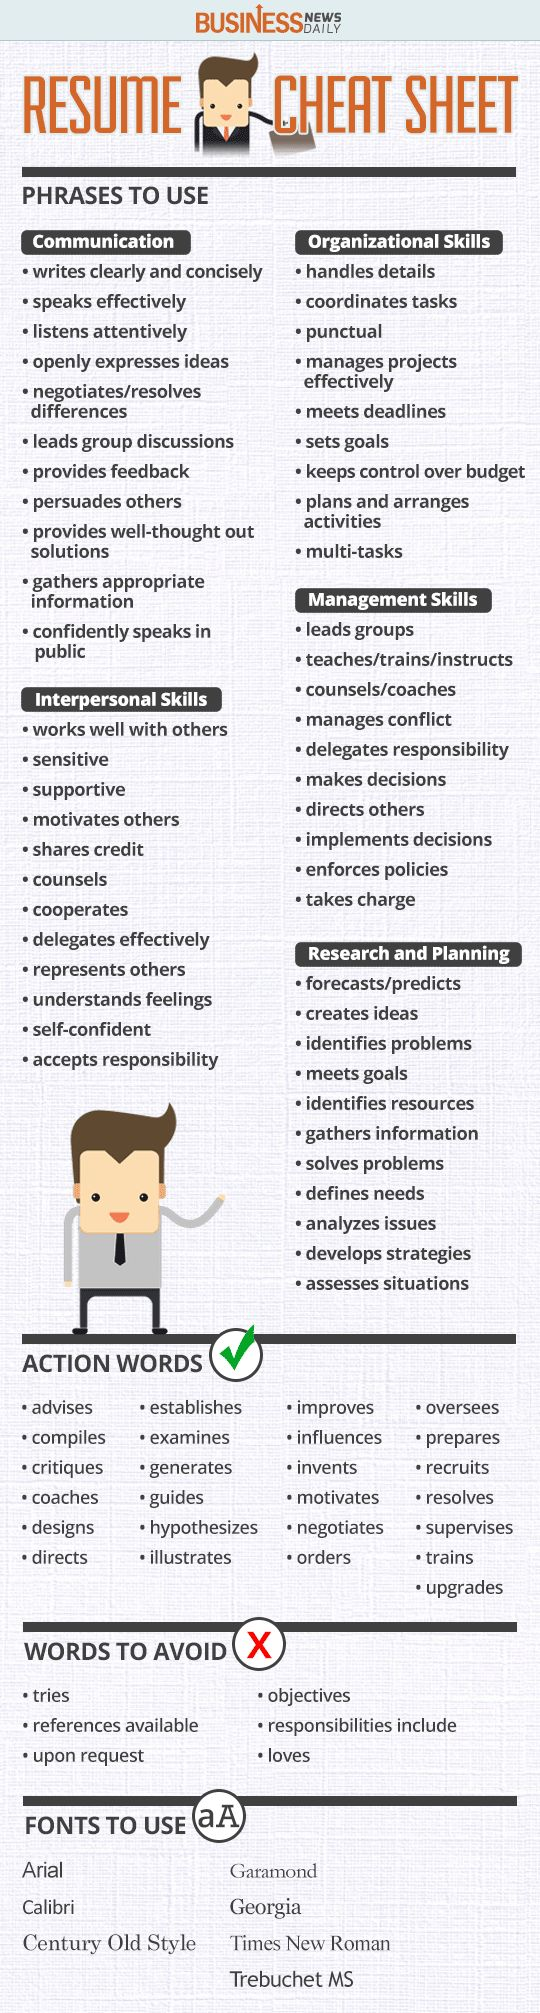 Opposenewapstandardsus  Pleasant  Ideas About Resume On Pinterest  Cv Format Resume Cv And  With Foxy Resume Cheat Sheet Infographic Andrews Almost Done With A Complete Unit On Employment Which With Cool Camp Counselor Job Description For Resume Also Director Level Resume In Addition Office Work Resume And Cover Letter For Job Resume As Well As Self Employed Resume Sample Additionally Professional Affiliations Resume From Pinterestcom With Opposenewapstandardsus  Foxy  Ideas About Resume On Pinterest  Cv Format Resume Cv And  With Cool Resume Cheat Sheet Infographic Andrews Almost Done With A Complete Unit On Employment Which And Pleasant Camp Counselor Job Description For Resume Also Director Level Resume In Addition Office Work Resume From Pinterestcom